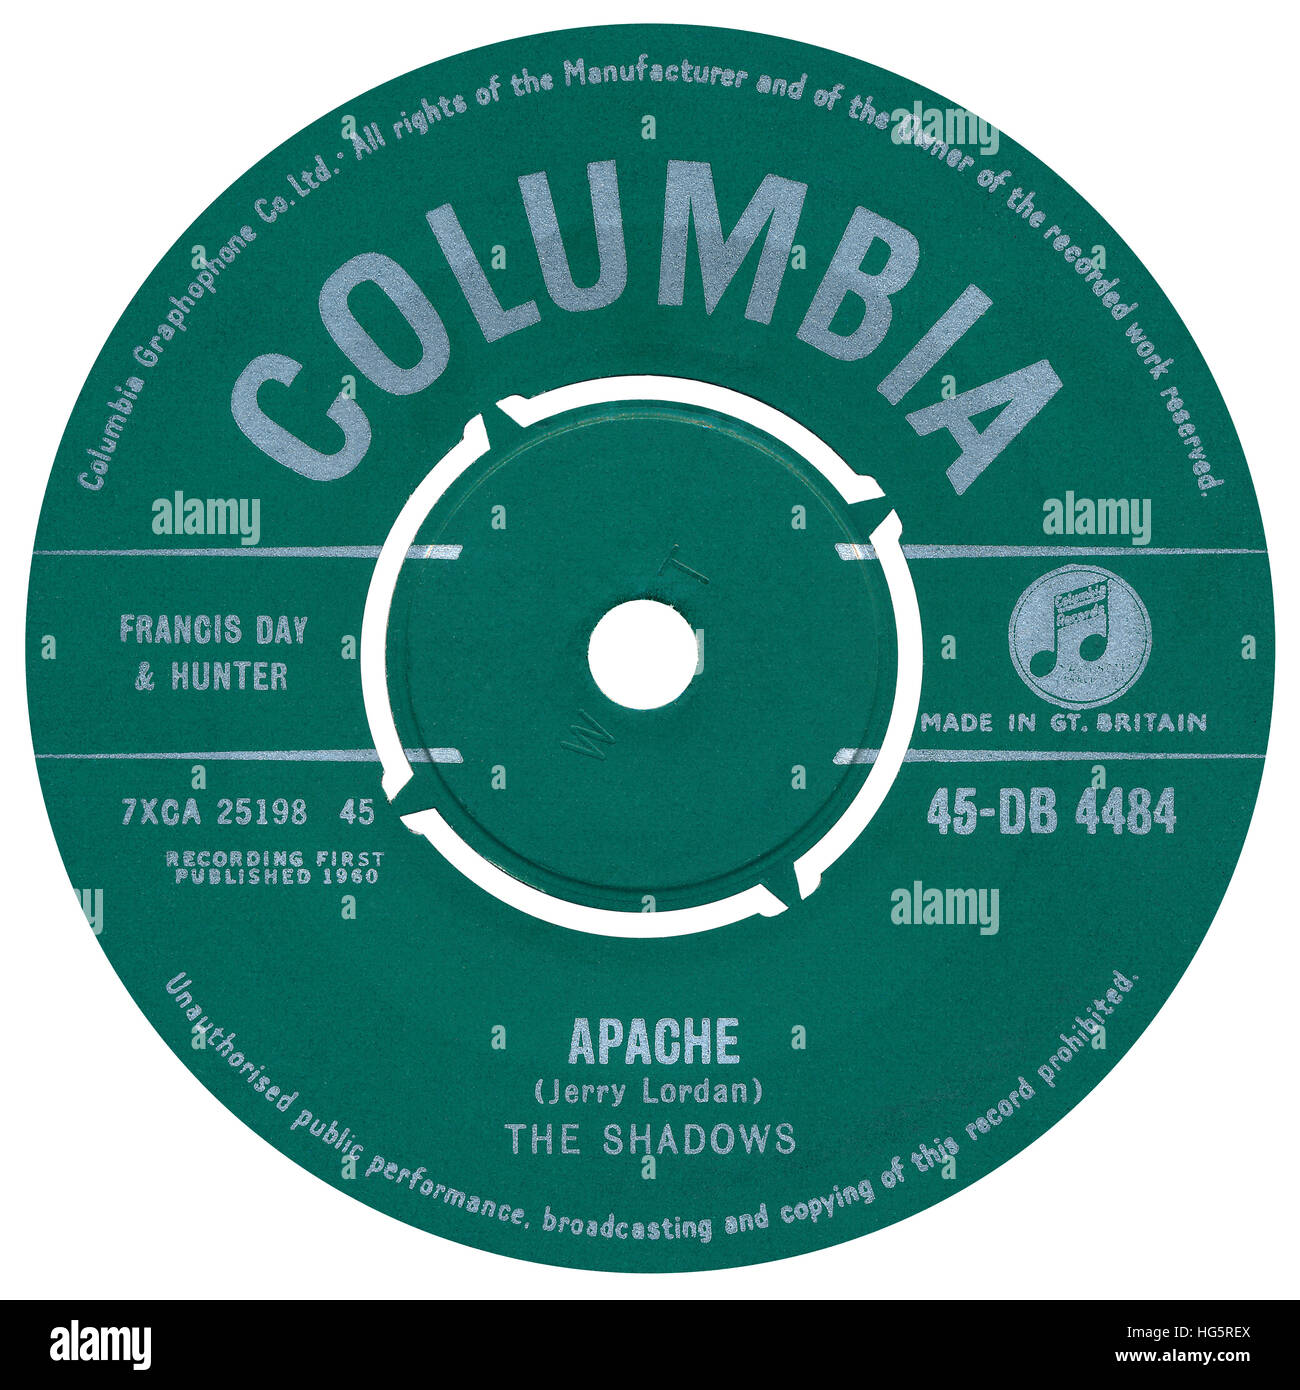 45 RPM 7' UK record label of Apache by The Shadows on the Columbia label from 1960 - Stock Image